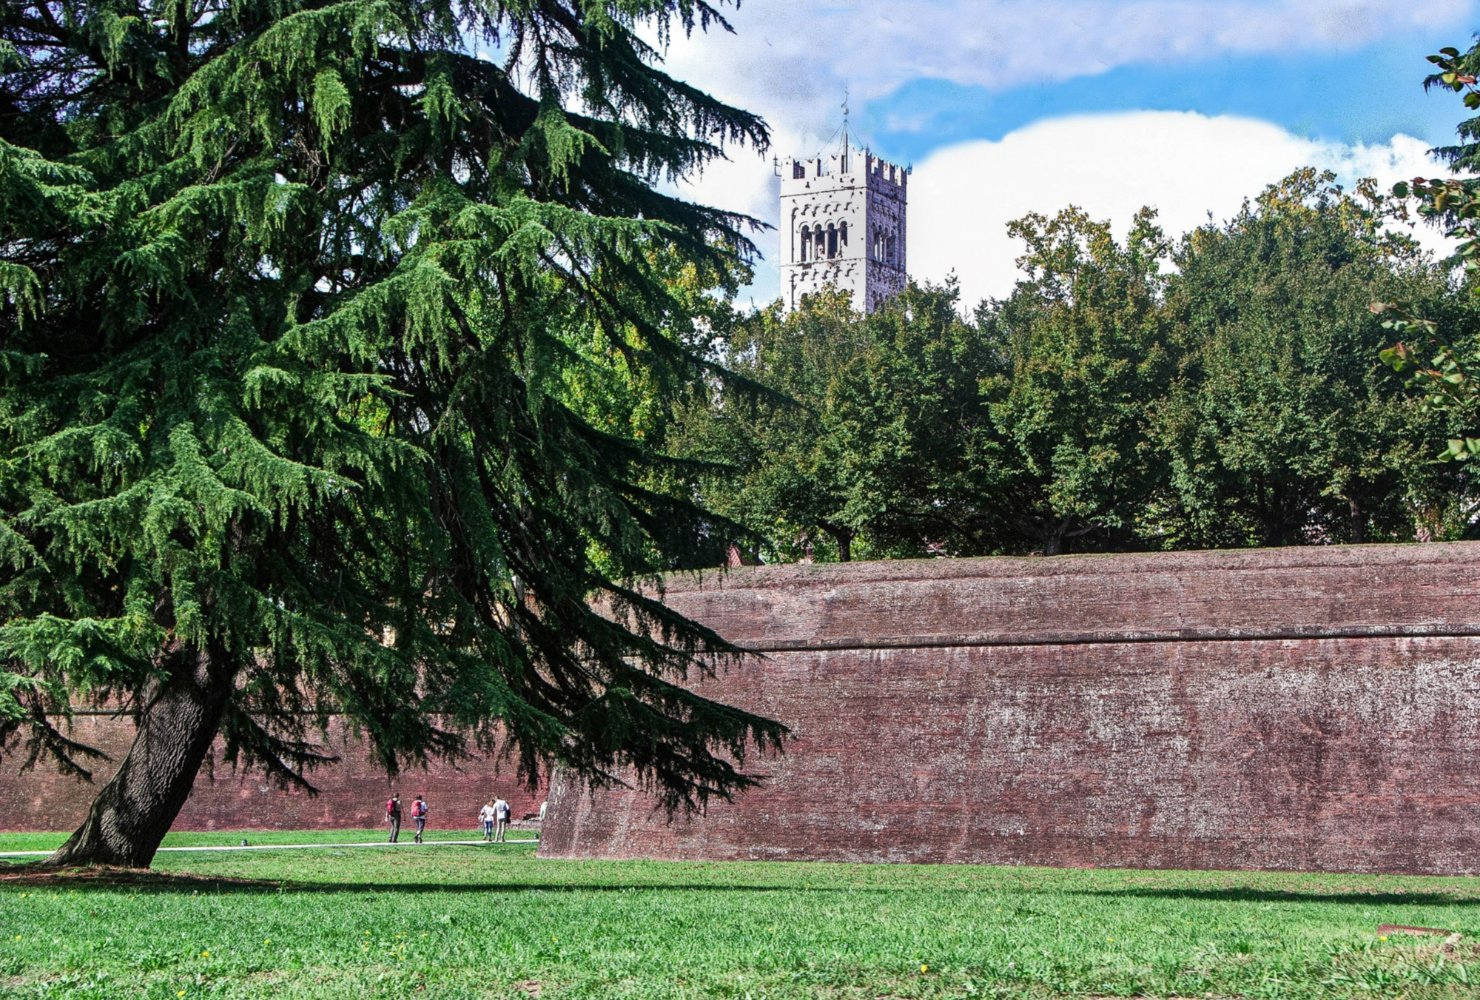 Lucca's walls